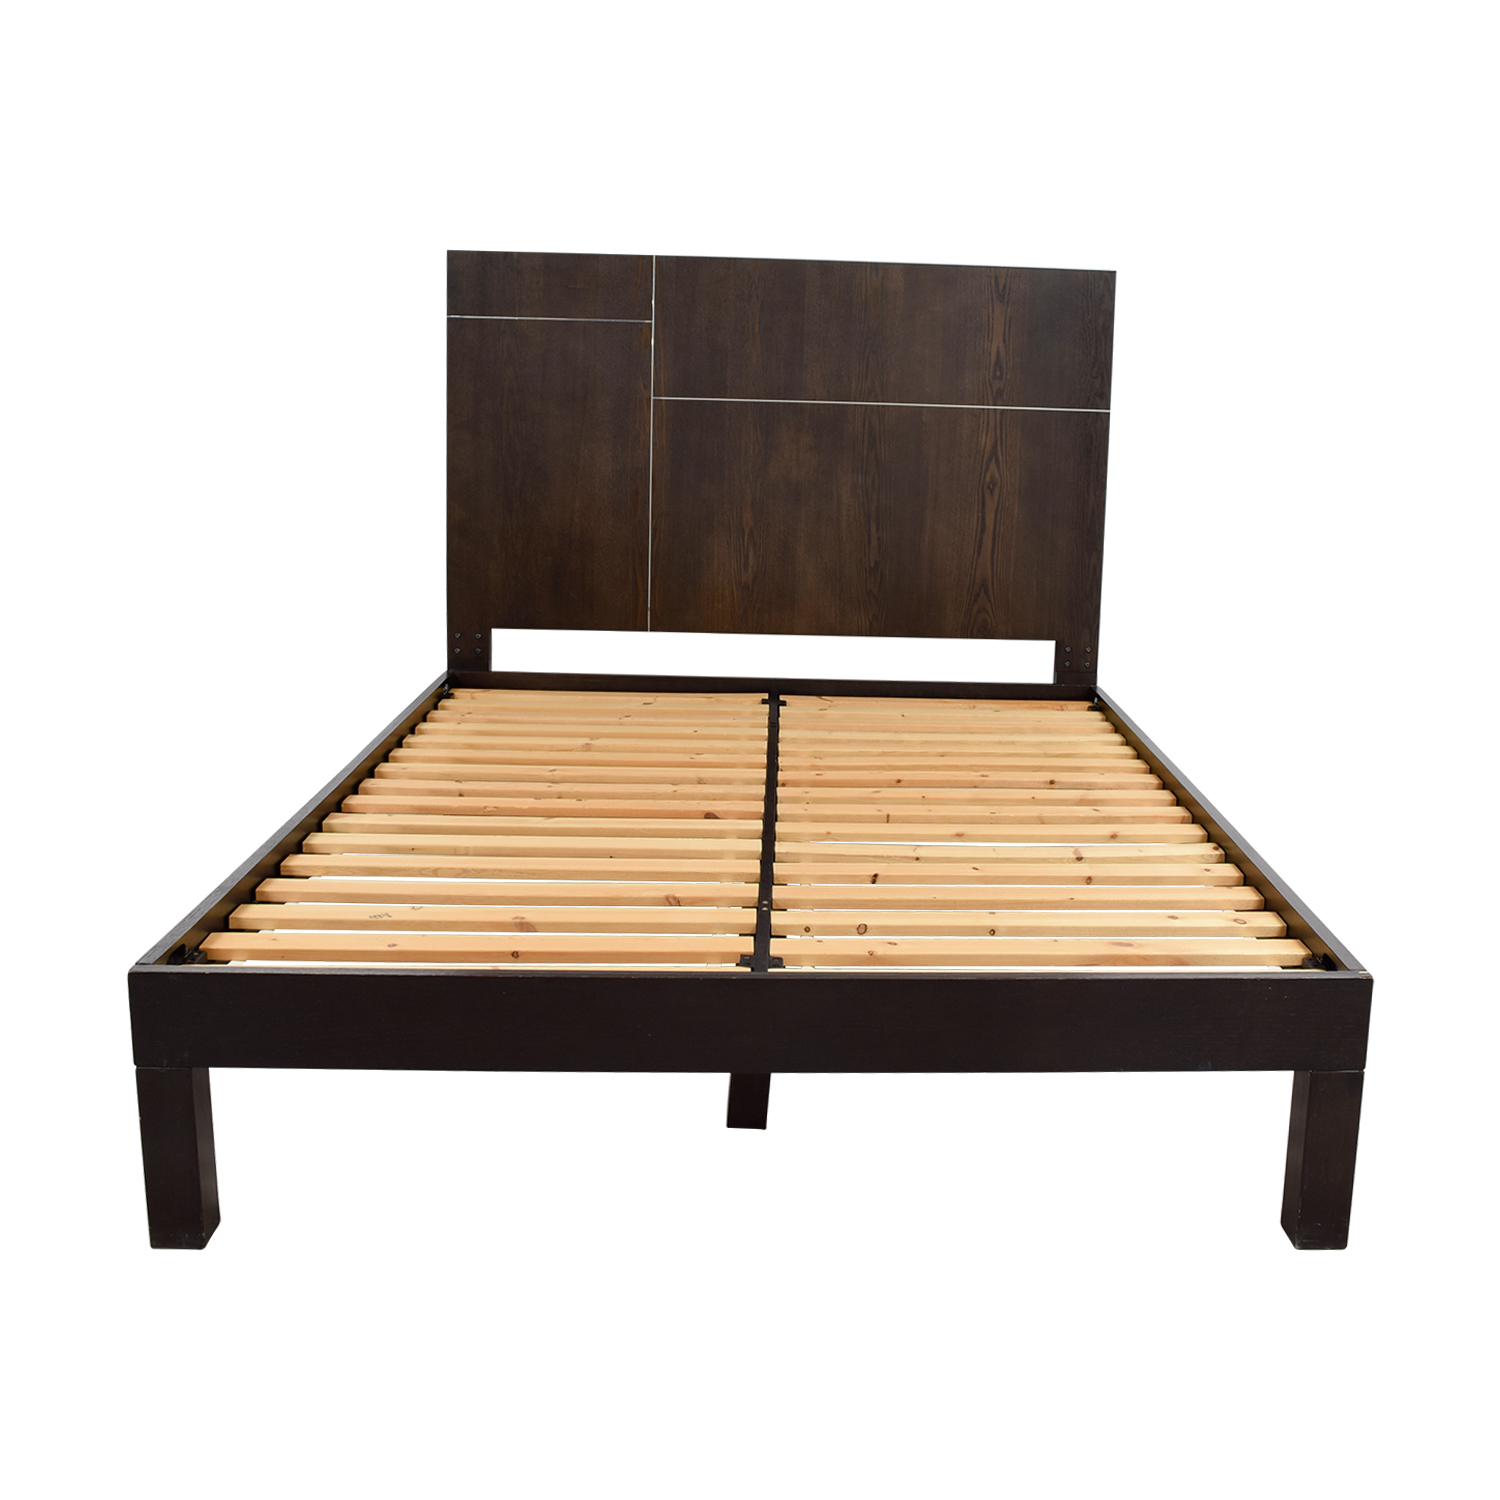 West Elm West Elm Wood Platform Queen Bed Frame on sale